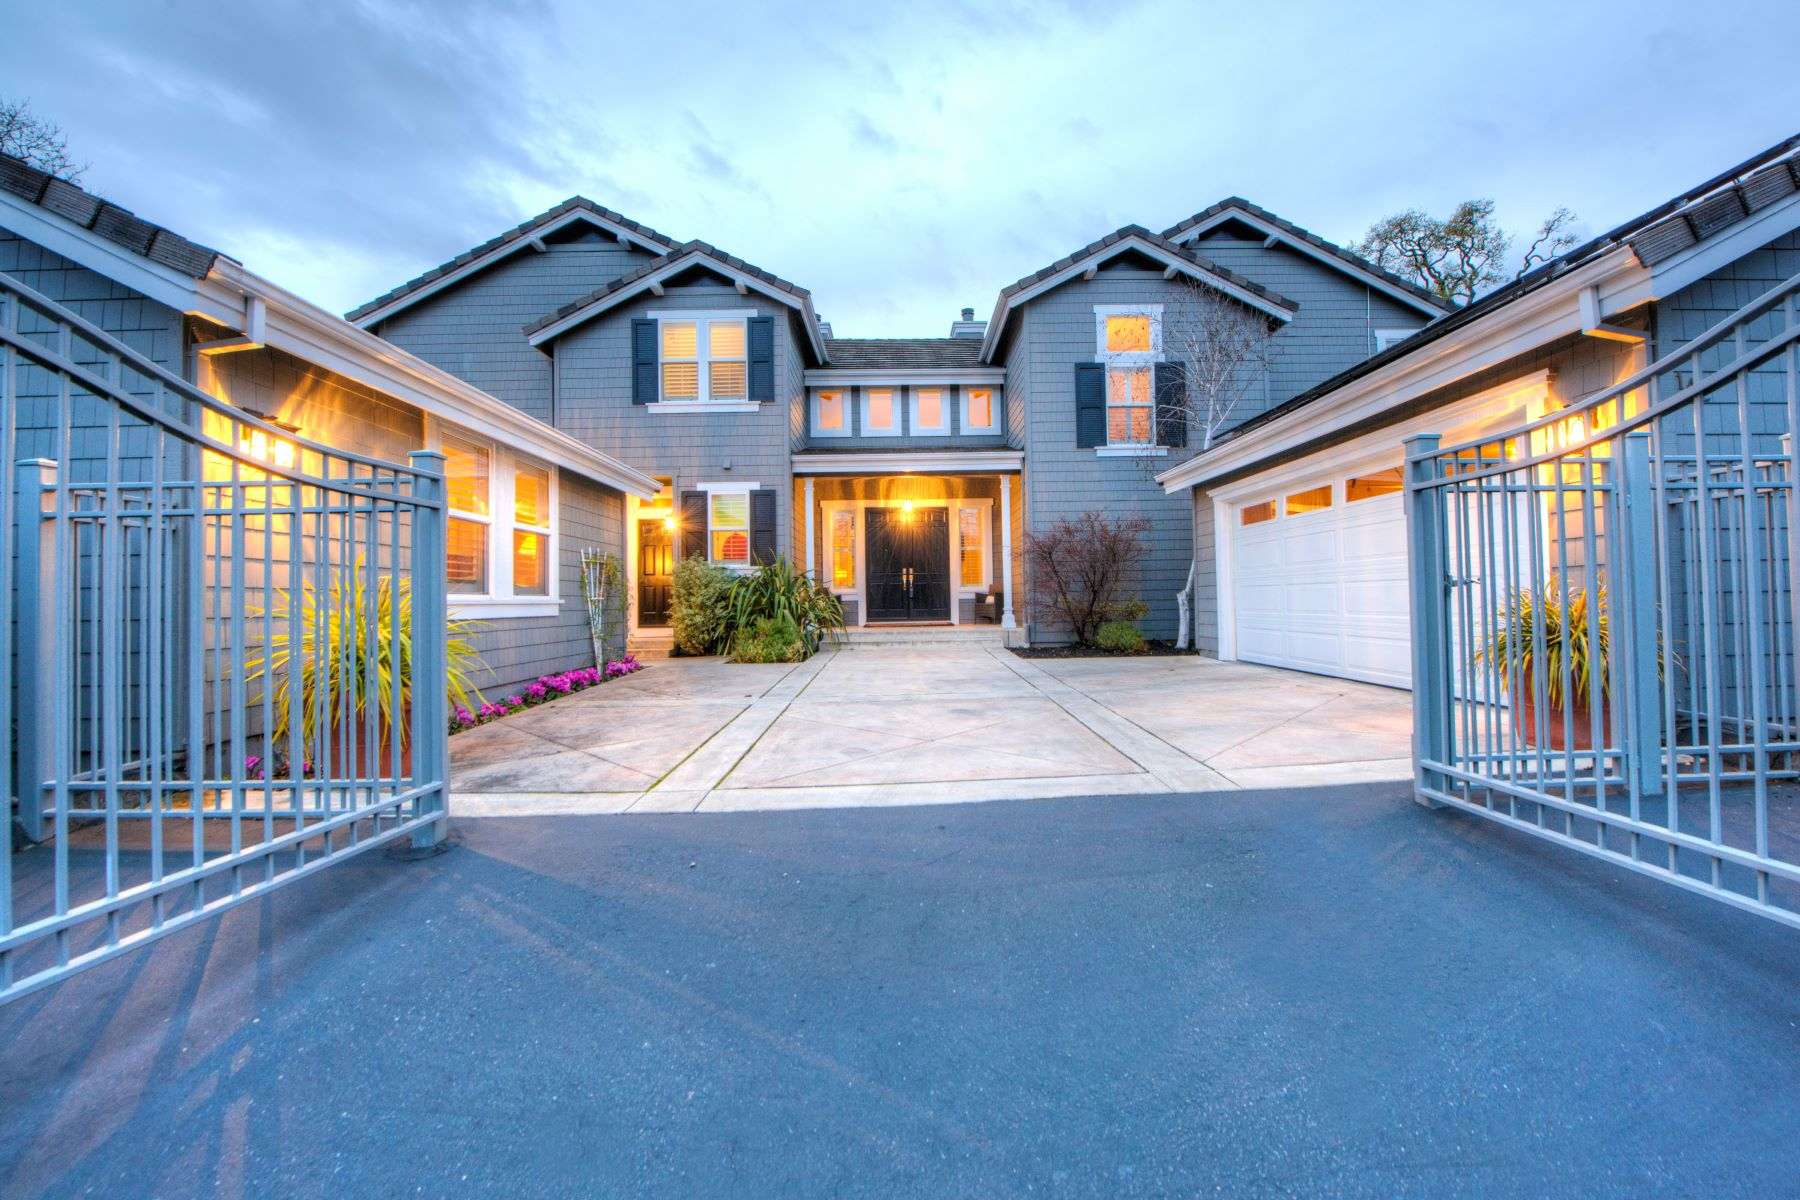 Single Family Home for Sale at Rush Creek Showplace 142 Oak Shade Lane Novato, California 94945 United States